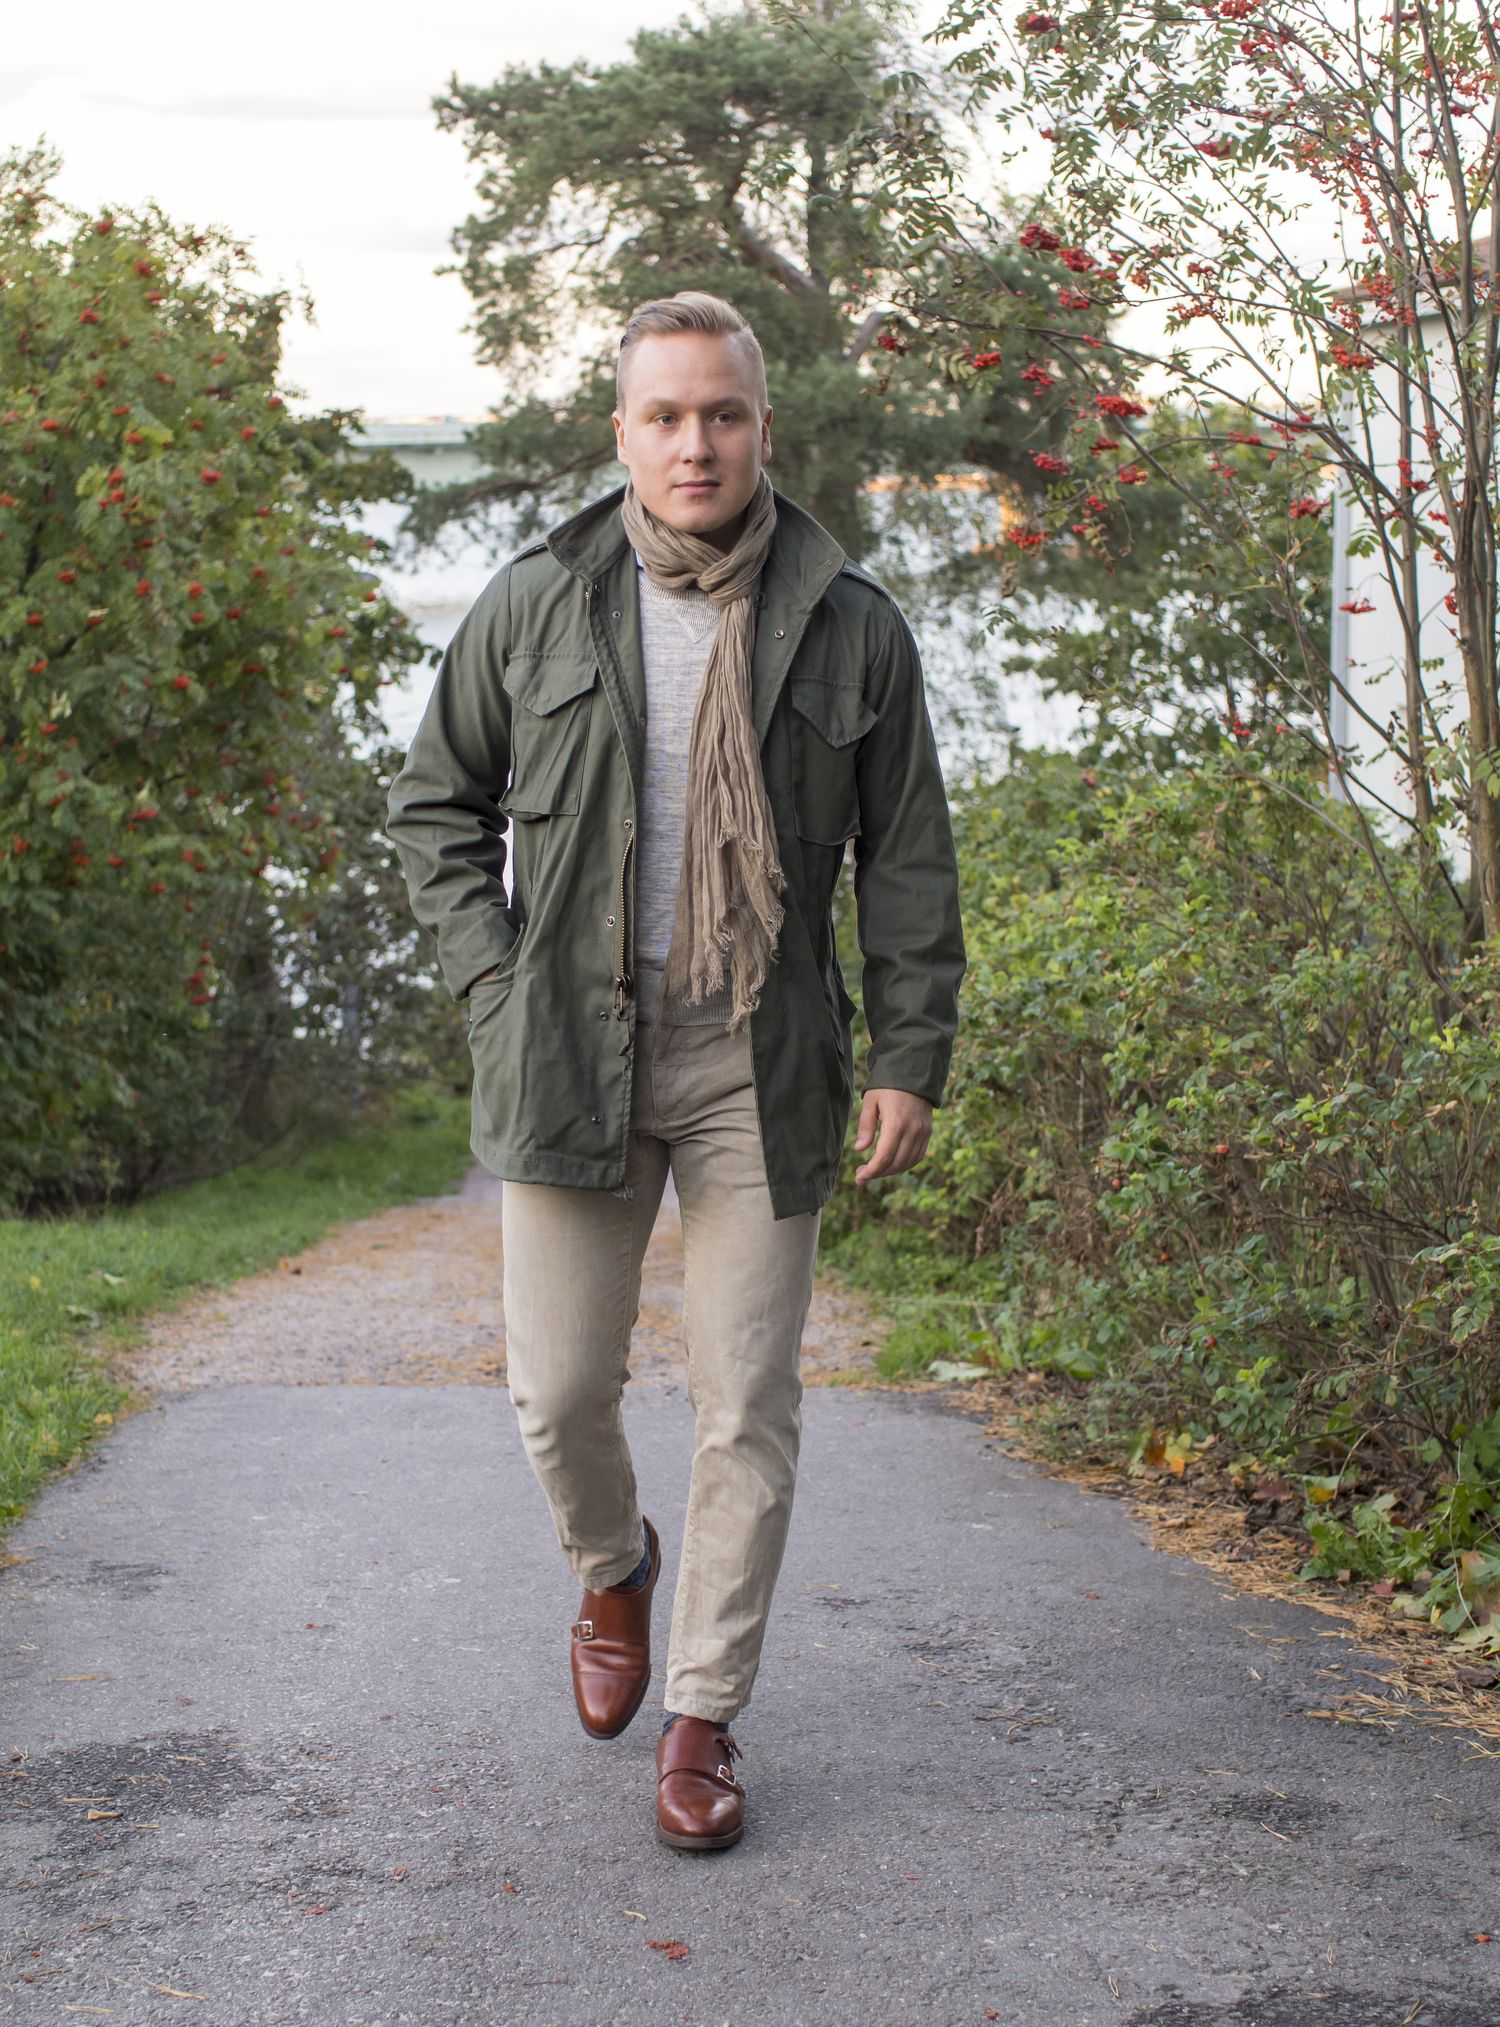 ... Equus Leather, trousers from Incotex Red, socks from Berg & Berg and